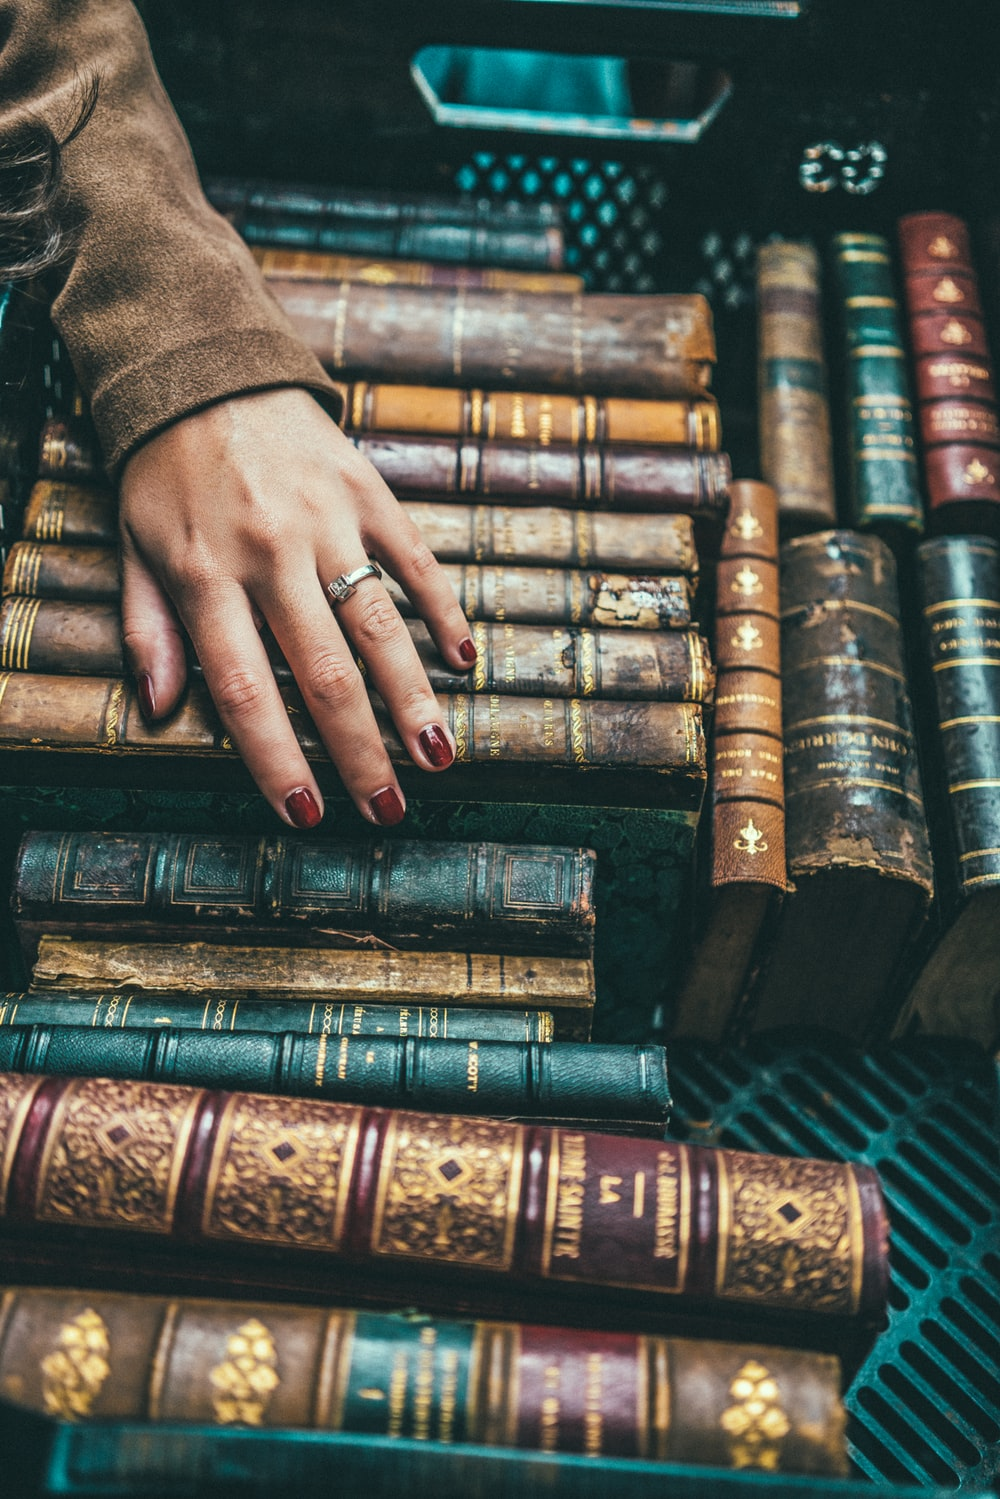 person hand on group of books